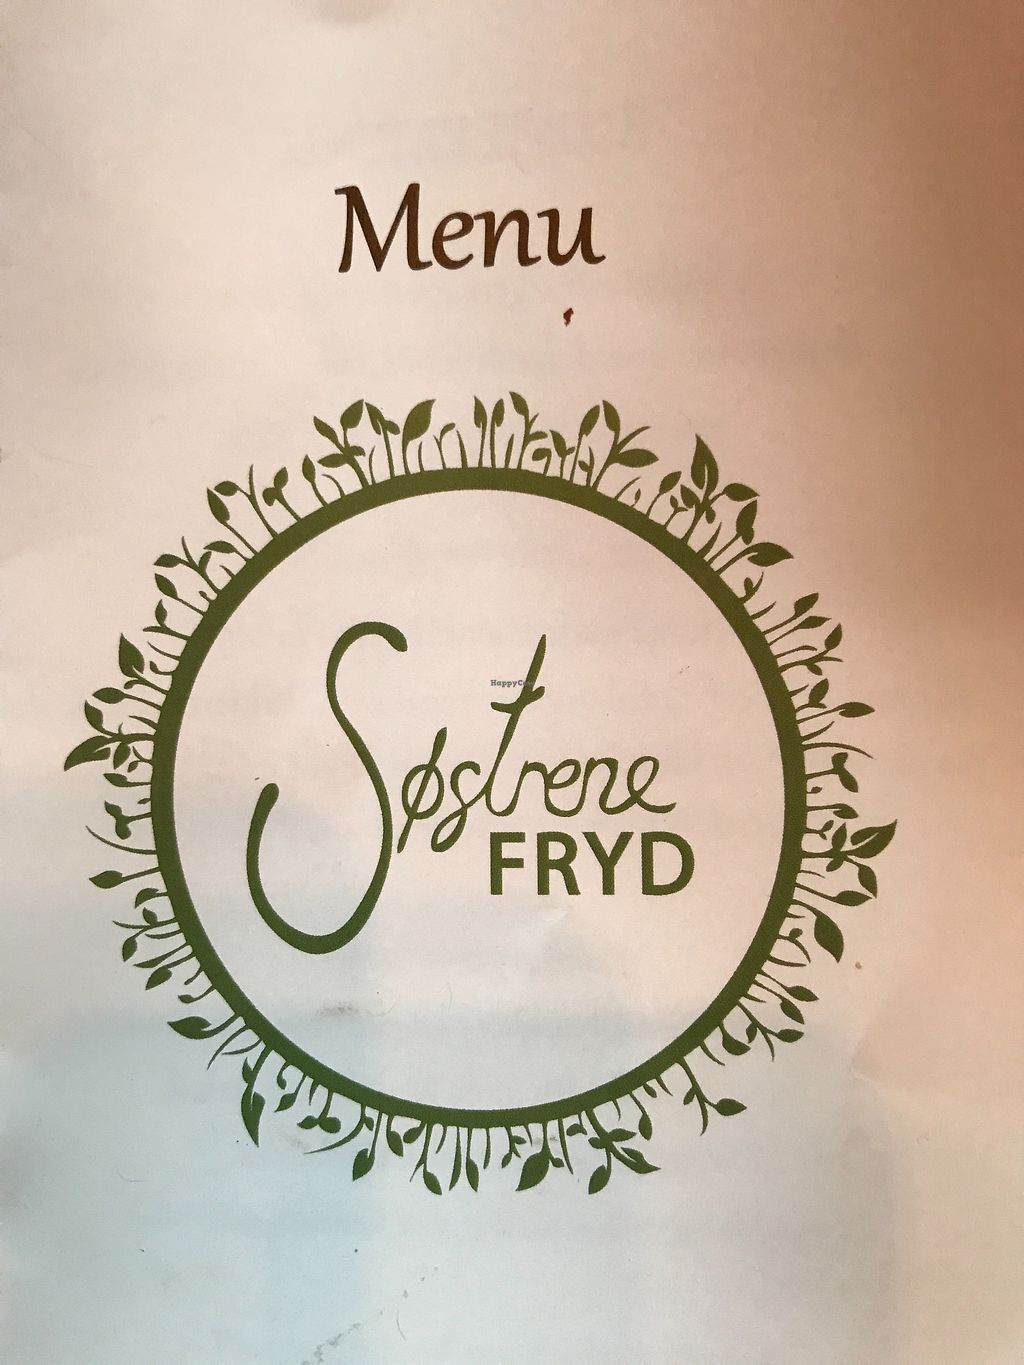 """Photo of Sostrene Fryd  by <a href=""""/members/profile/Jessica-Chickpea"""">Jessica-Chickpea</a> <br/>Søstrene Fryd <br/> September 4, 2017  - <a href='/contact/abuse/image/62082/300882'>Report</a>"""